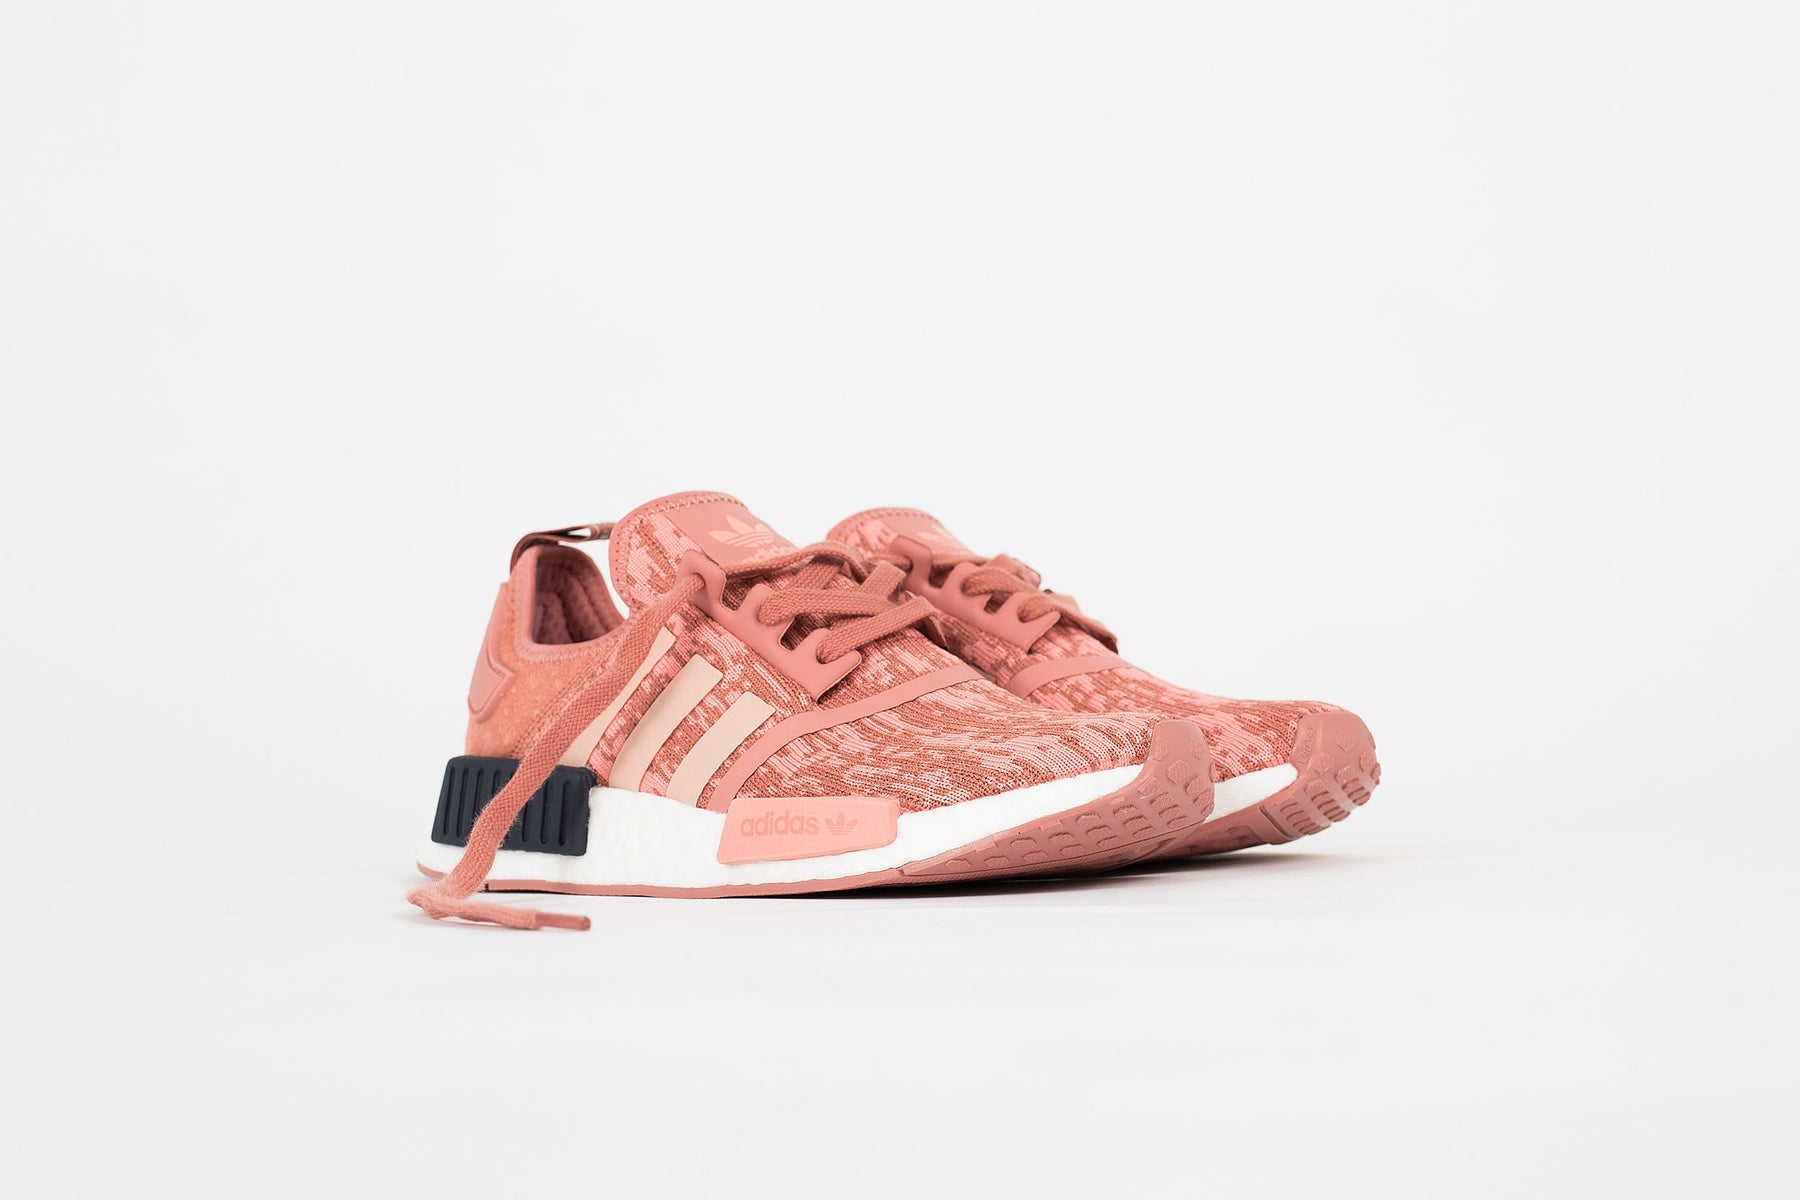 new style ea1f7 2069d NMD R1 Raw Pink